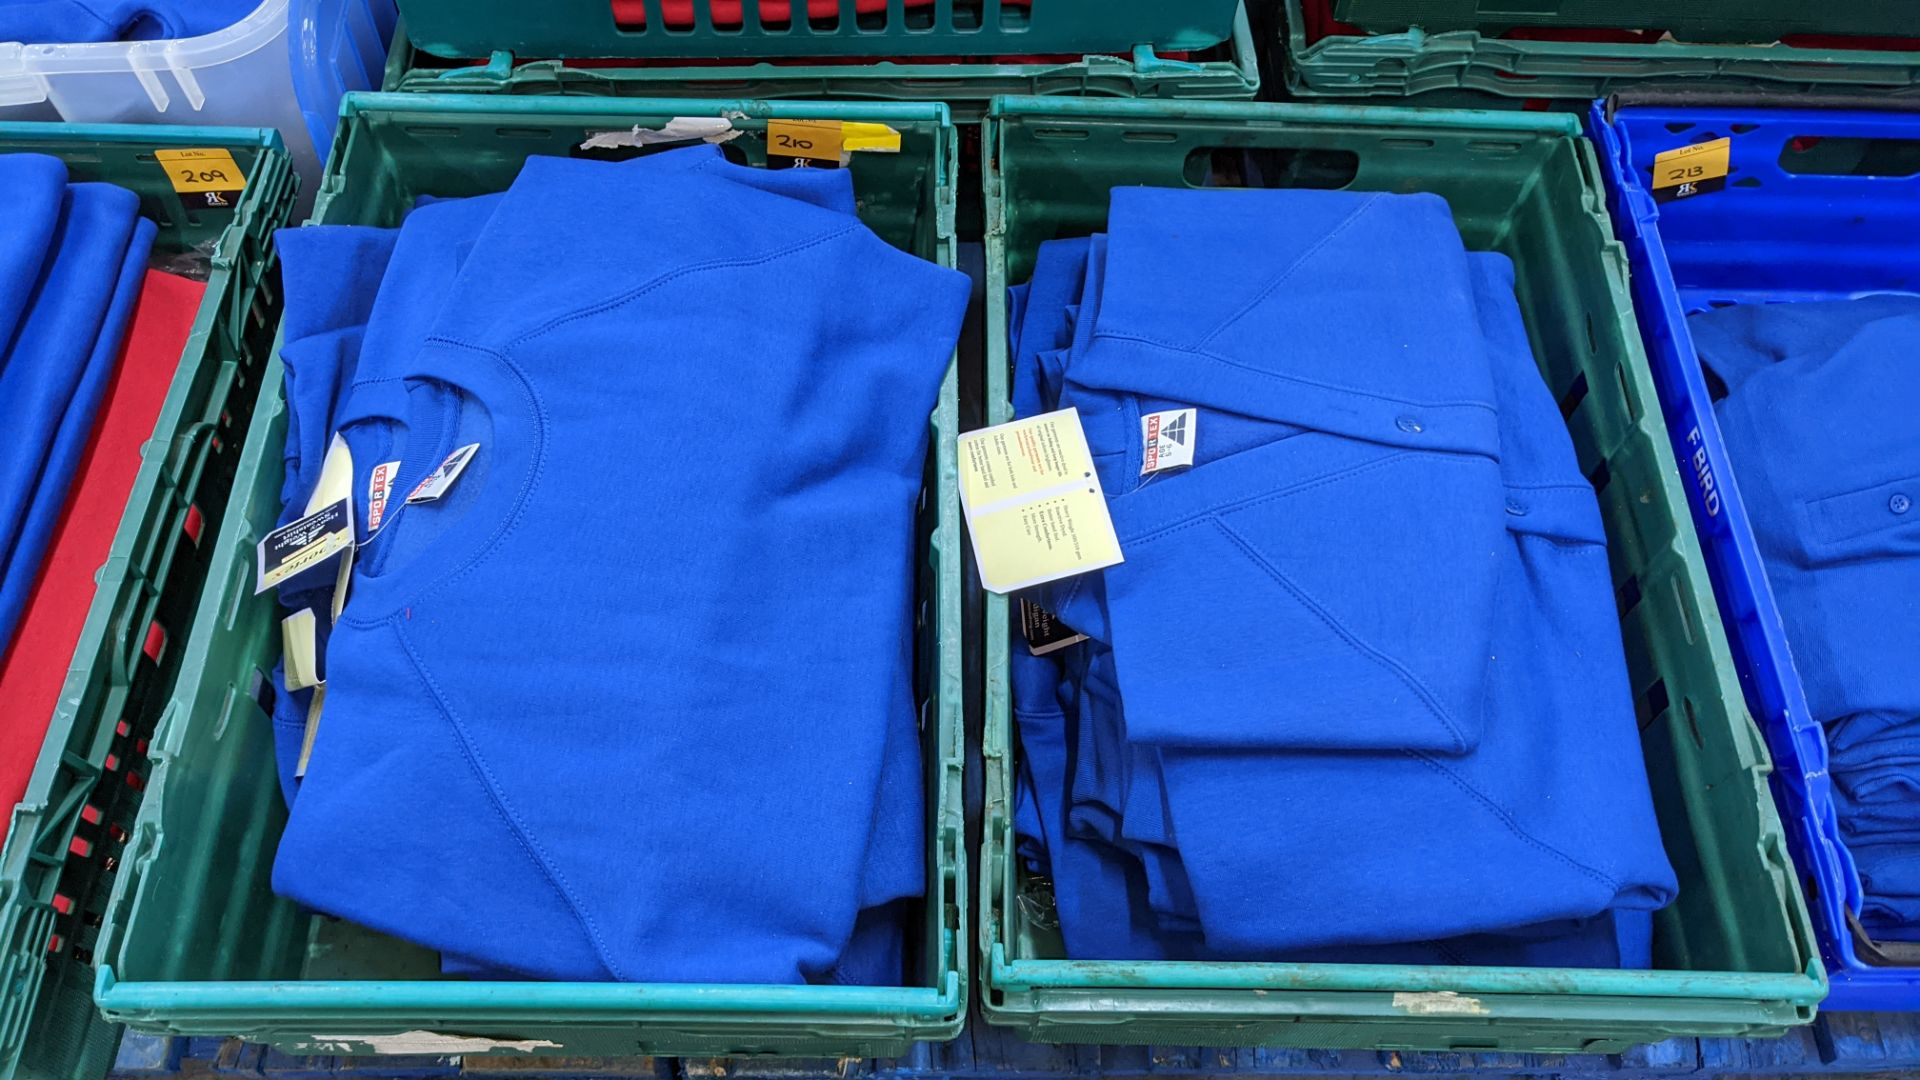 Approx 15 off Sportex children's assorted sweatshirts - the contents of 2 crates. NB crates exclude - Image 2 of 6